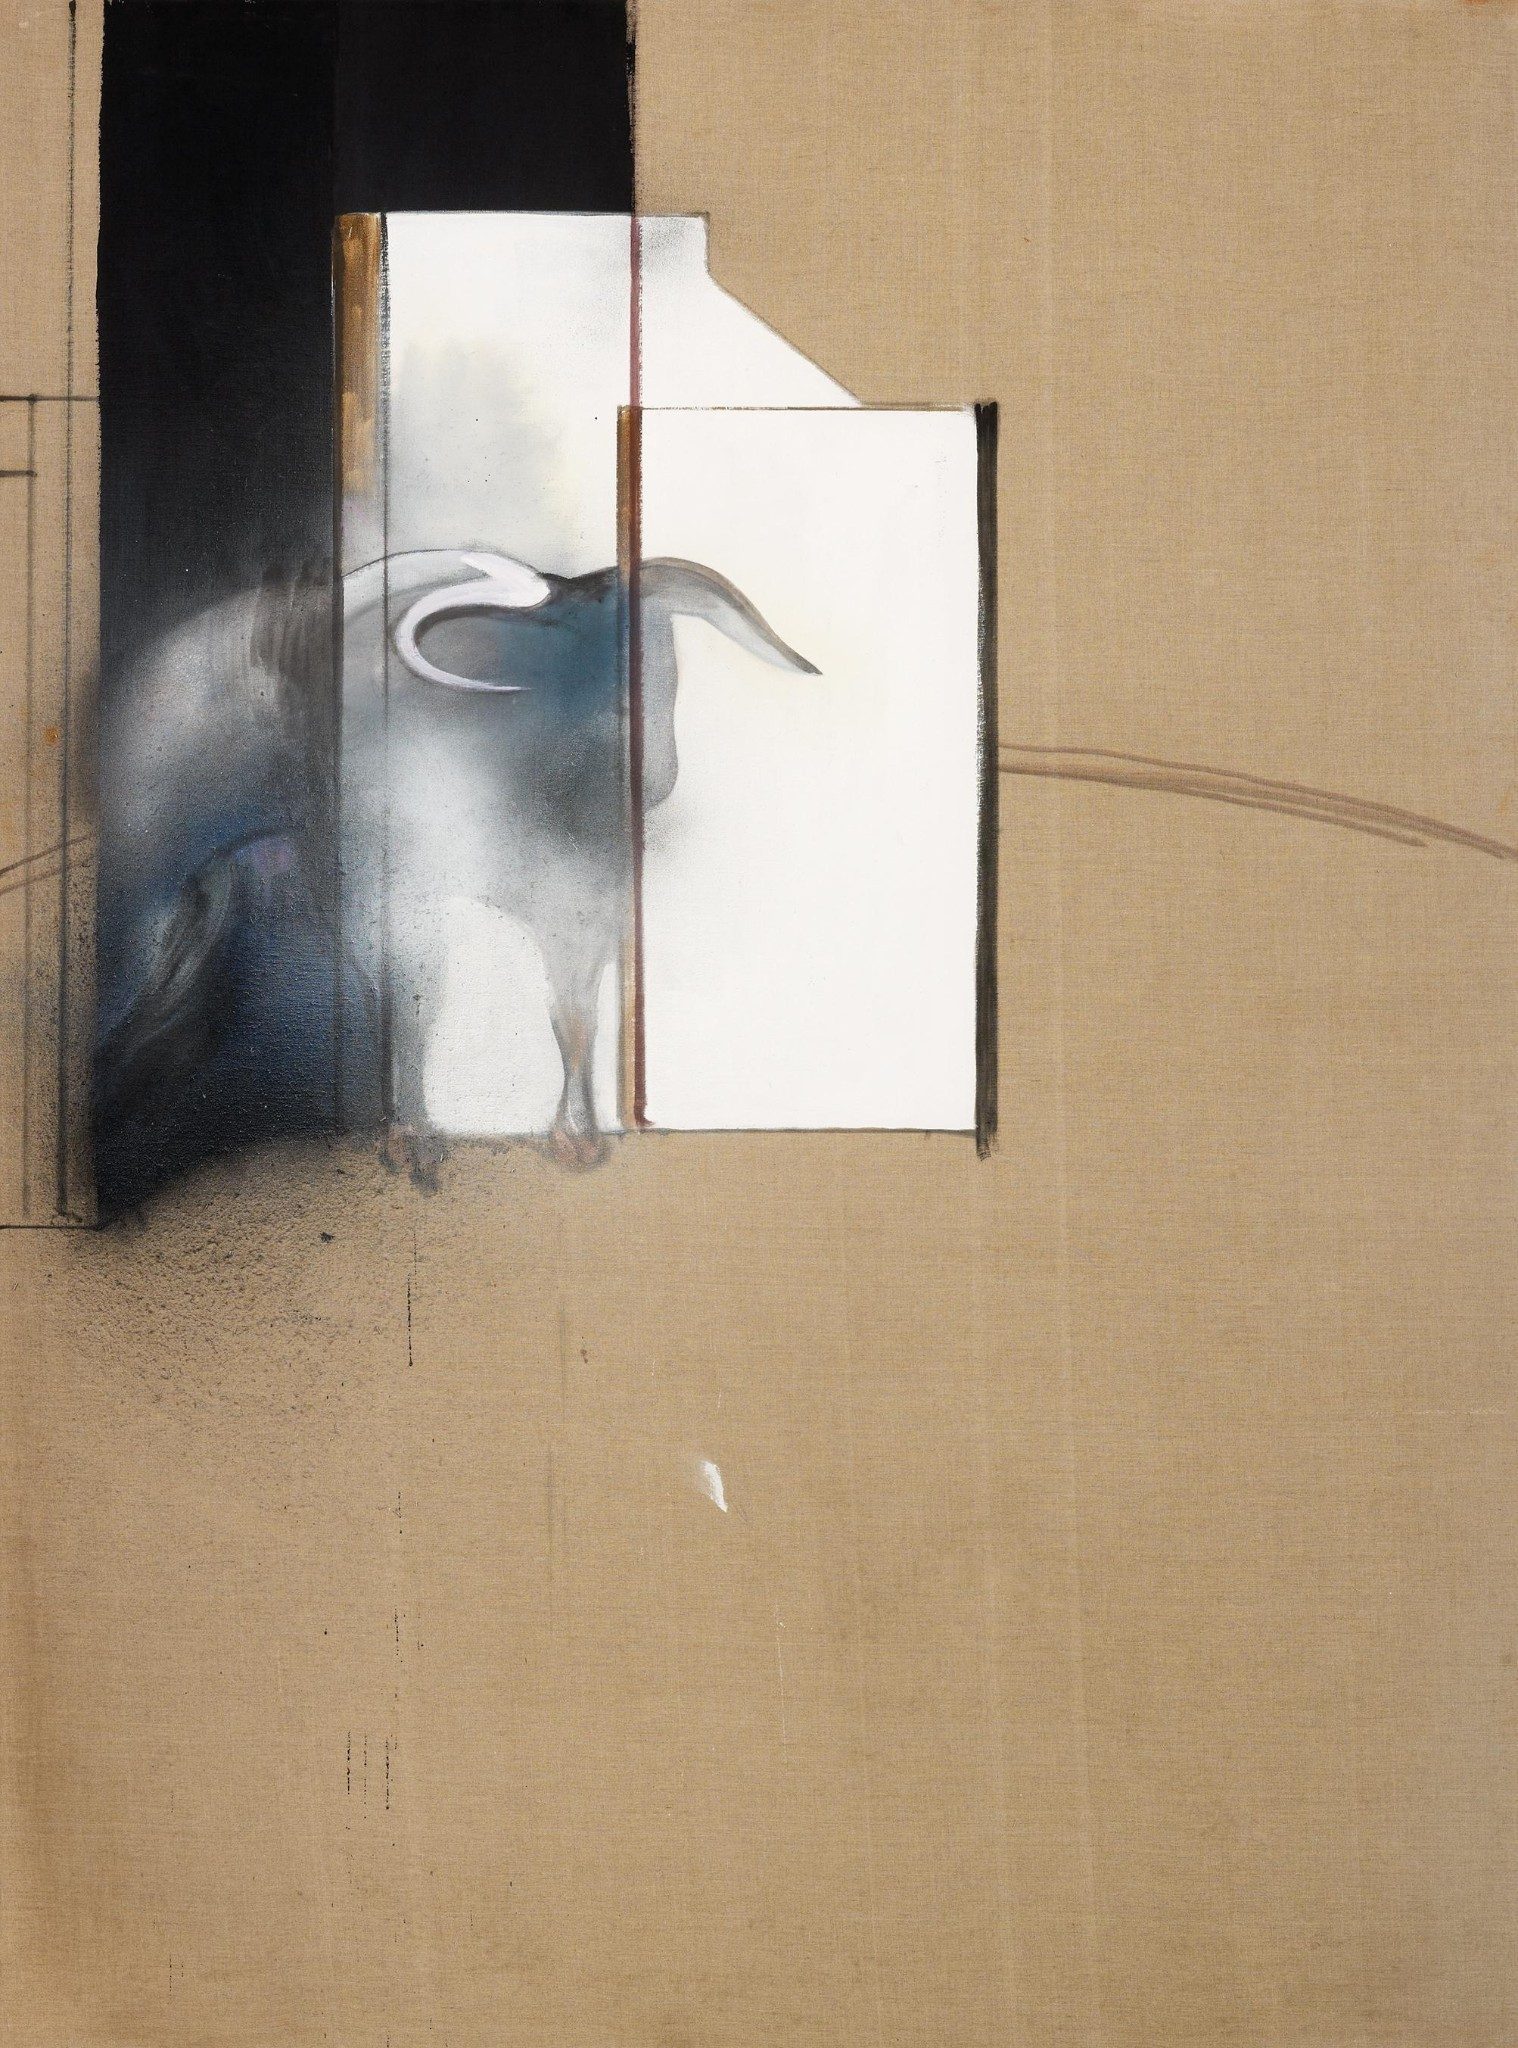 Francis Bacon: final painting found in 'very private' collection